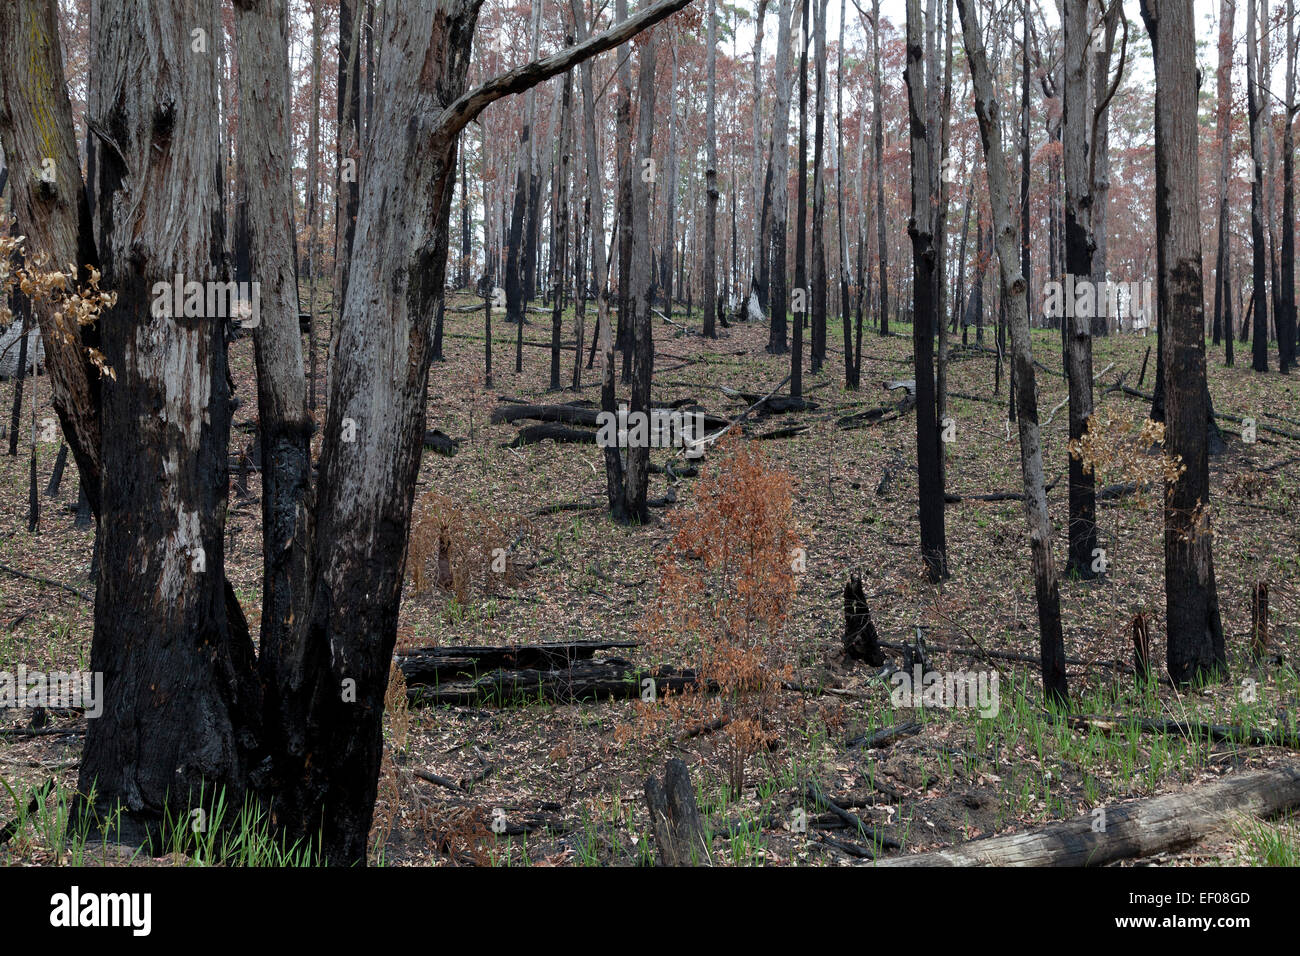 Eucalyptus forest in New South Wales, Australia regenerating after a fire - Stock Image